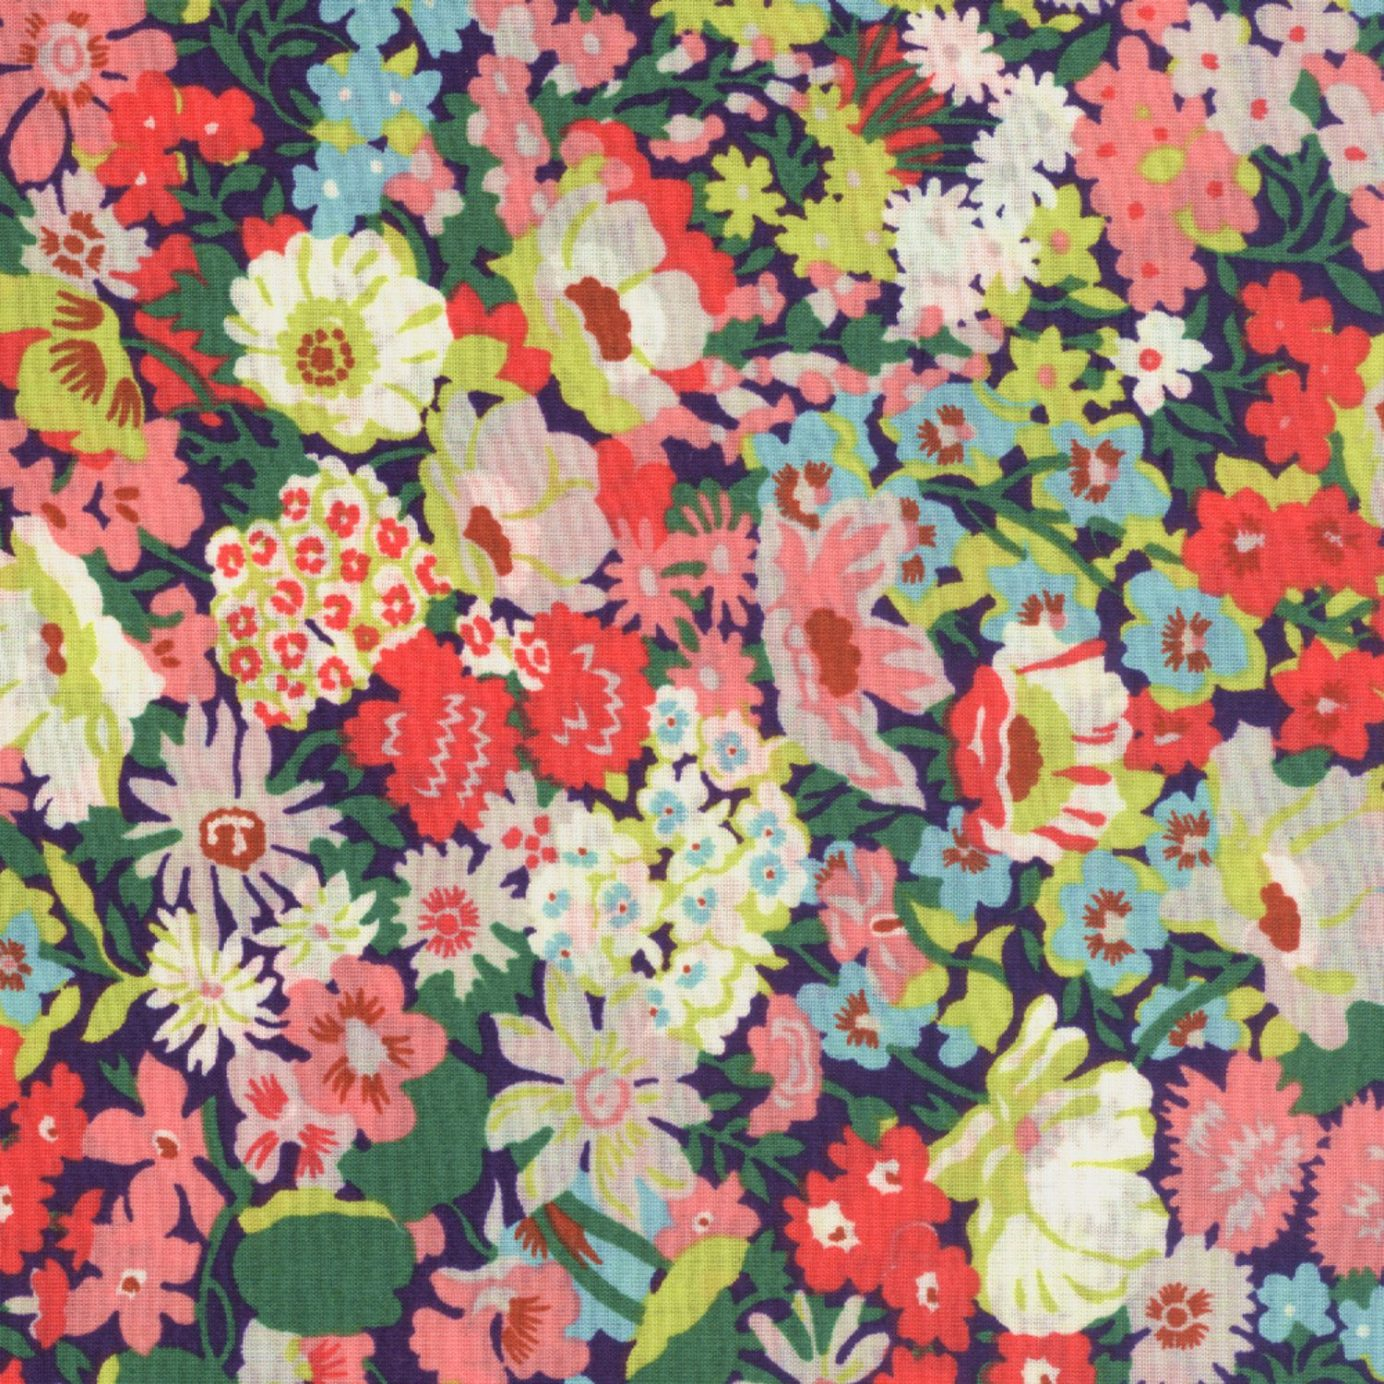 liberty-tana-lawn-fabric-thorpe-k